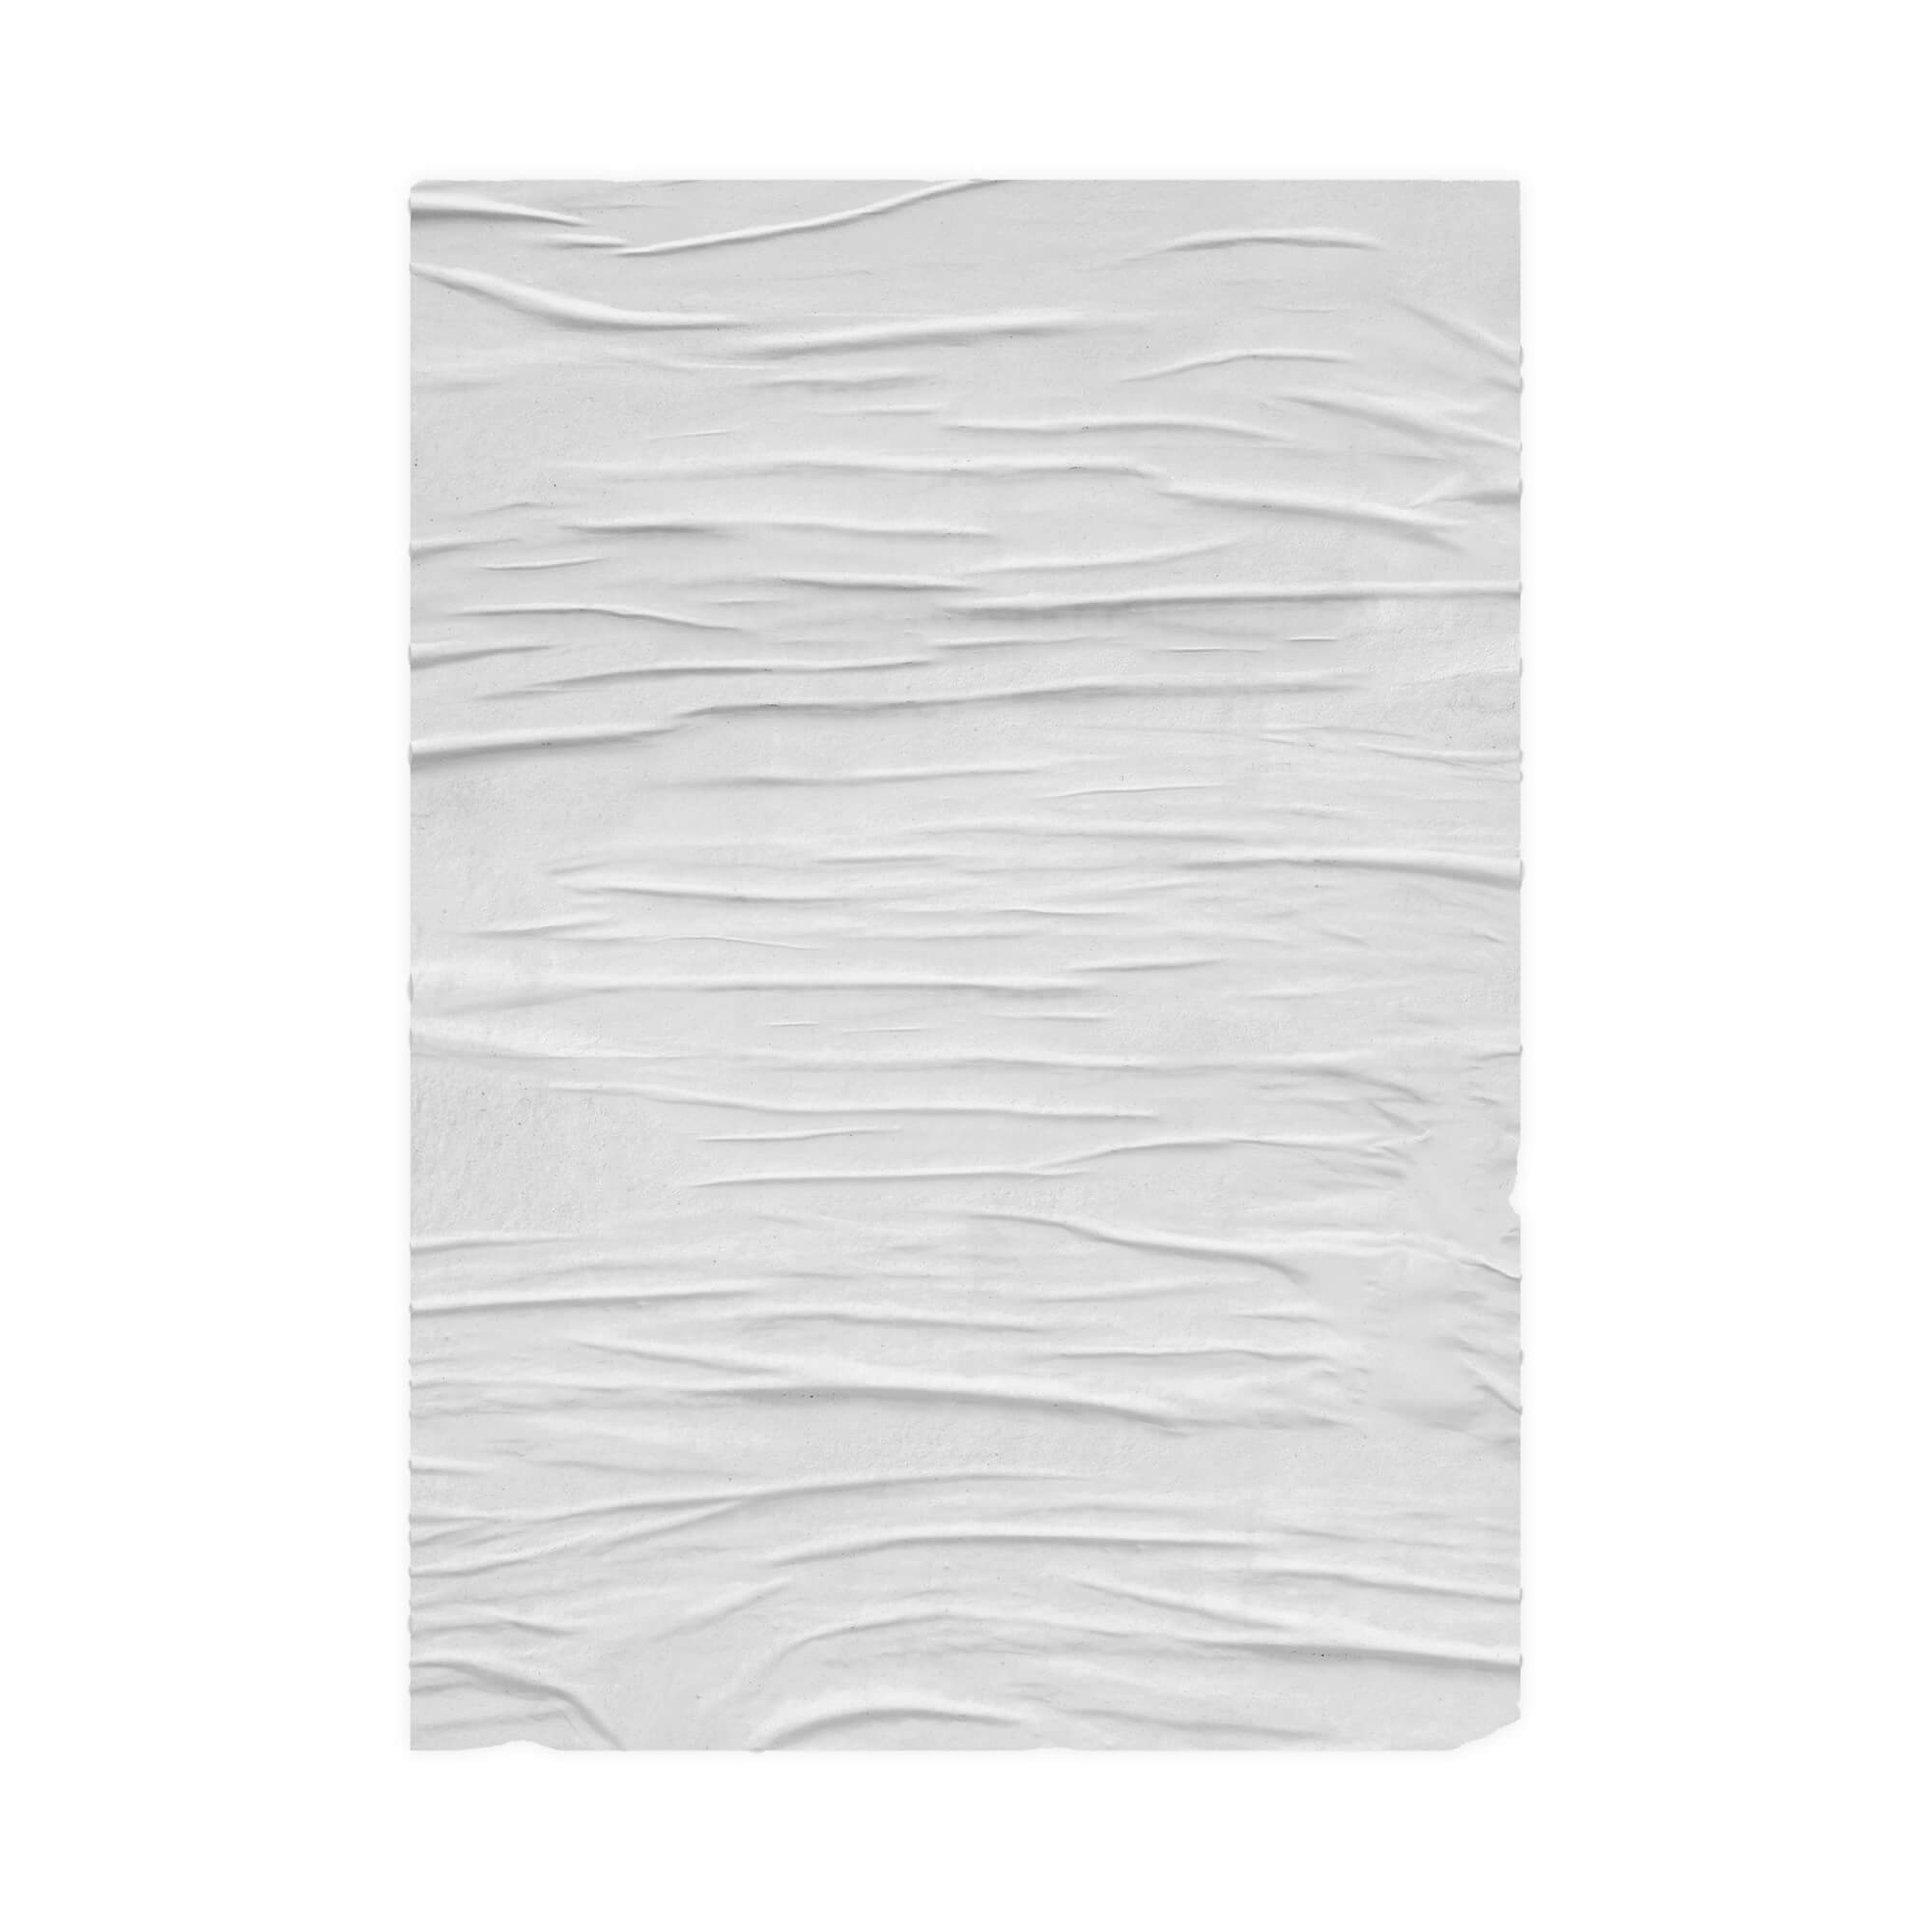 Blank Free Wrinkled Paper Mockup PSD Template